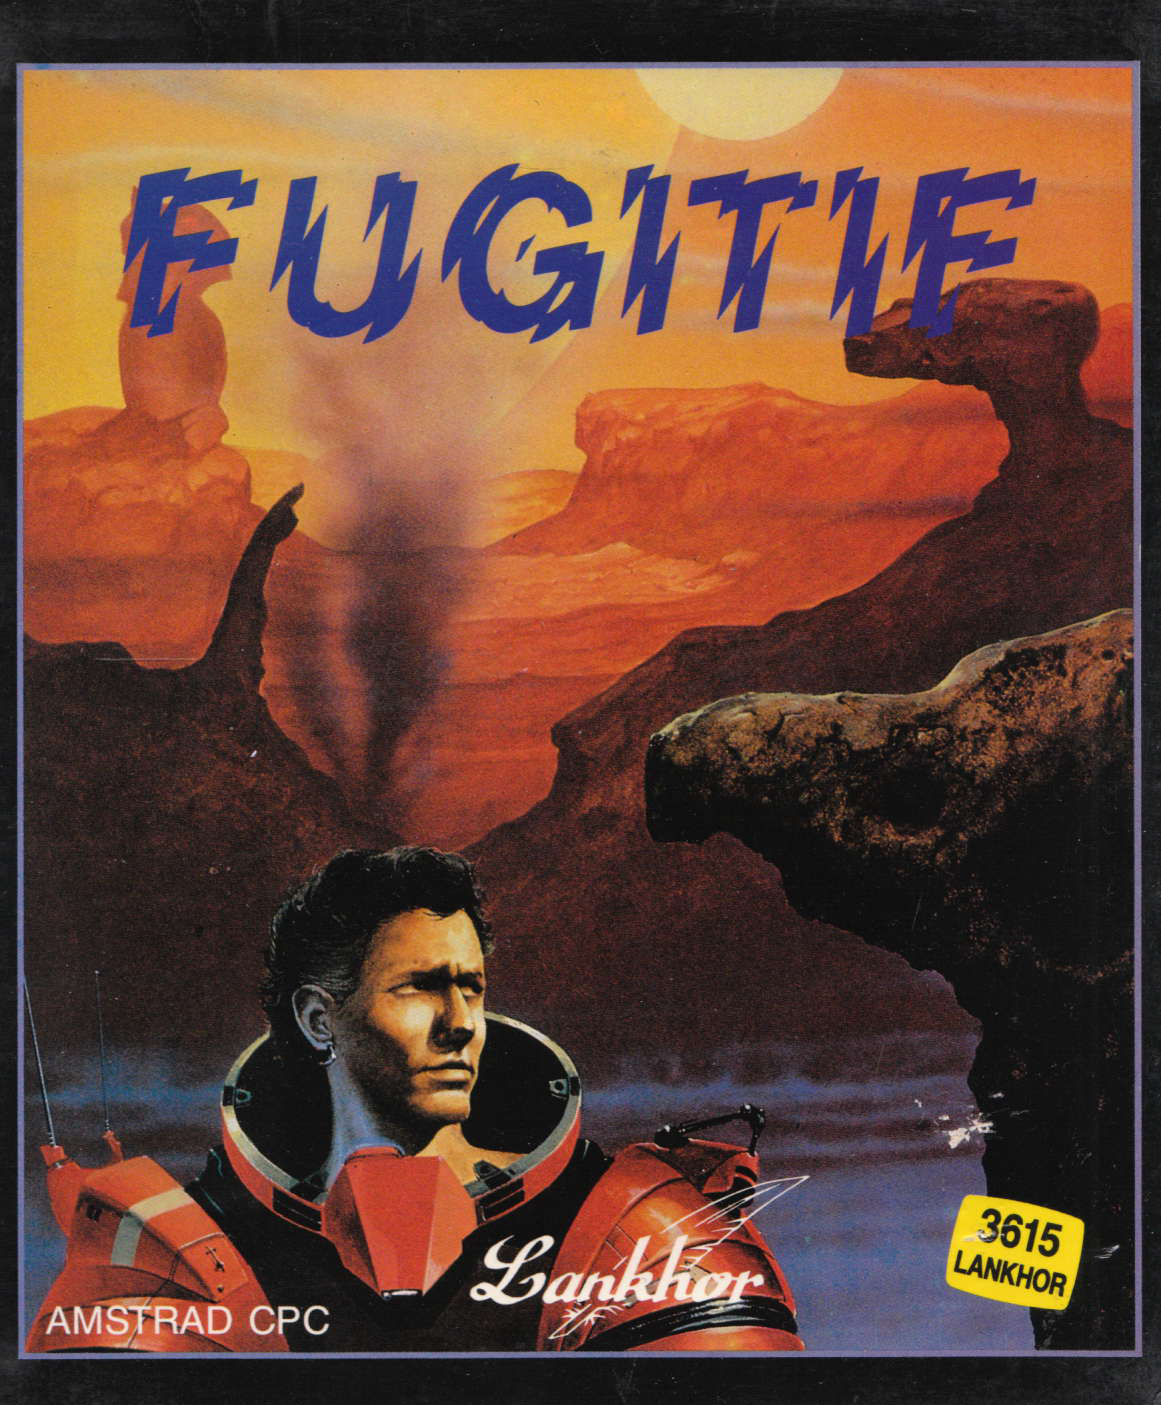 cover of Fugitif provided by GameBase CPC